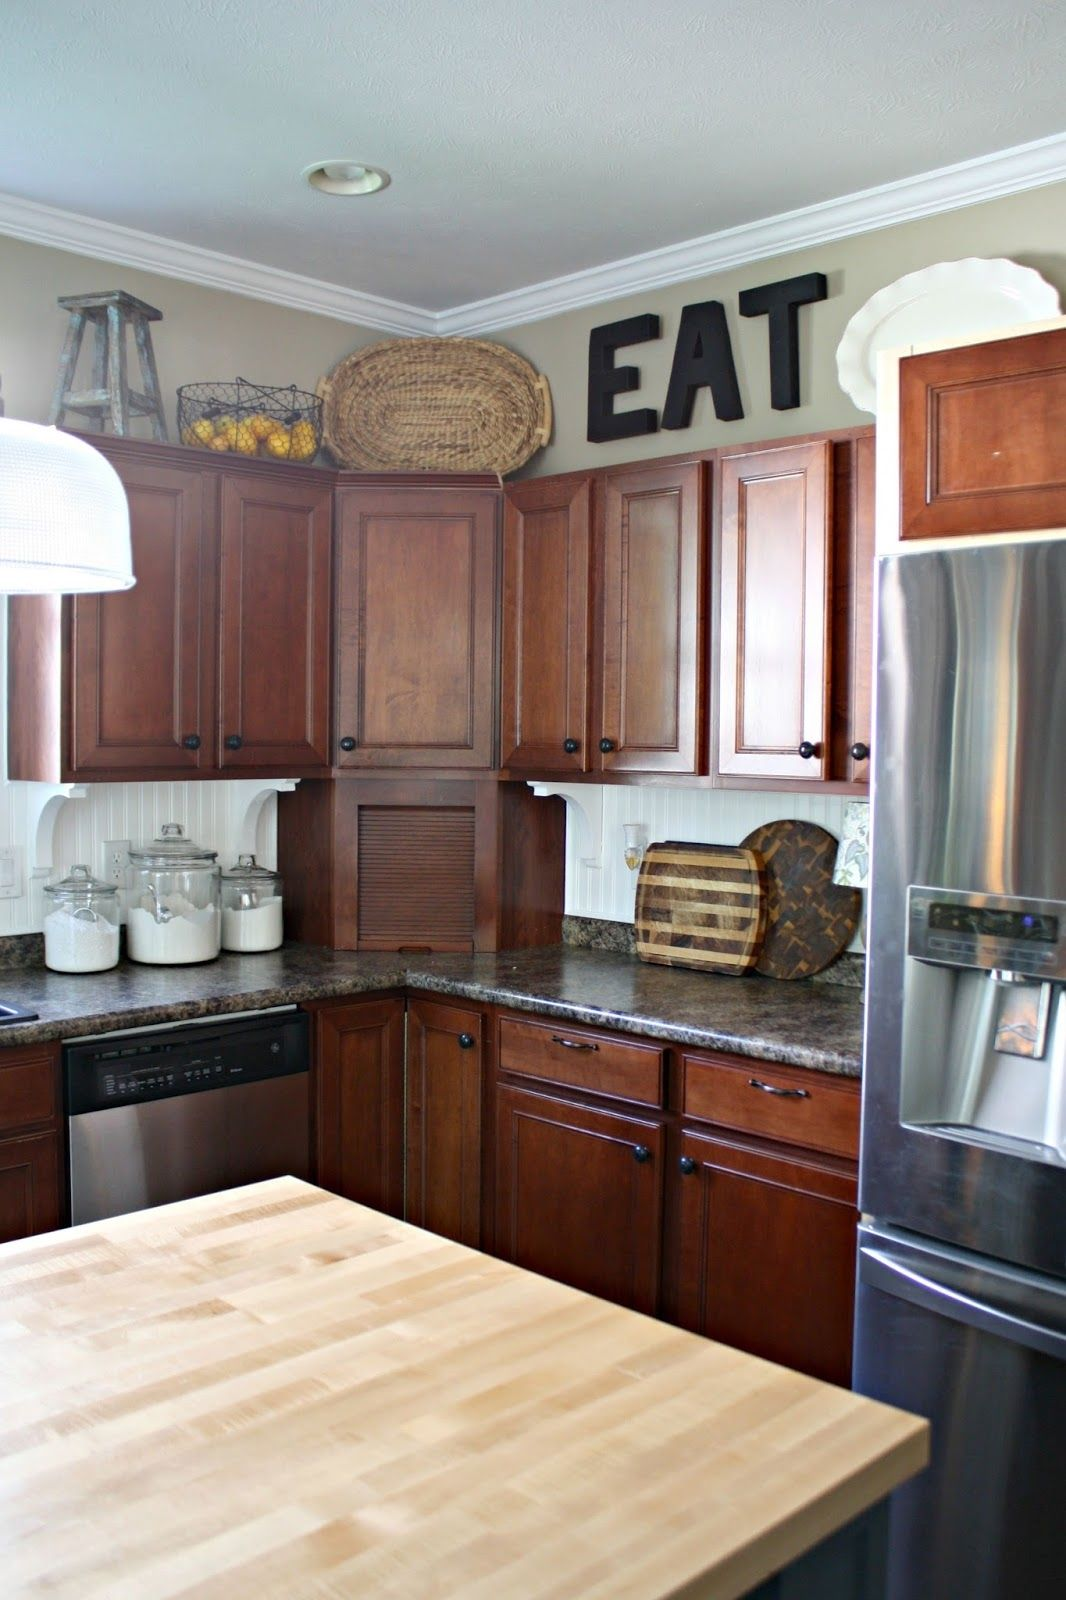 Kitchen Cabinets That Dont Go To The Ceiling Trendy Kitchen Tile Kitchen Cabinets Kitchen Renovation